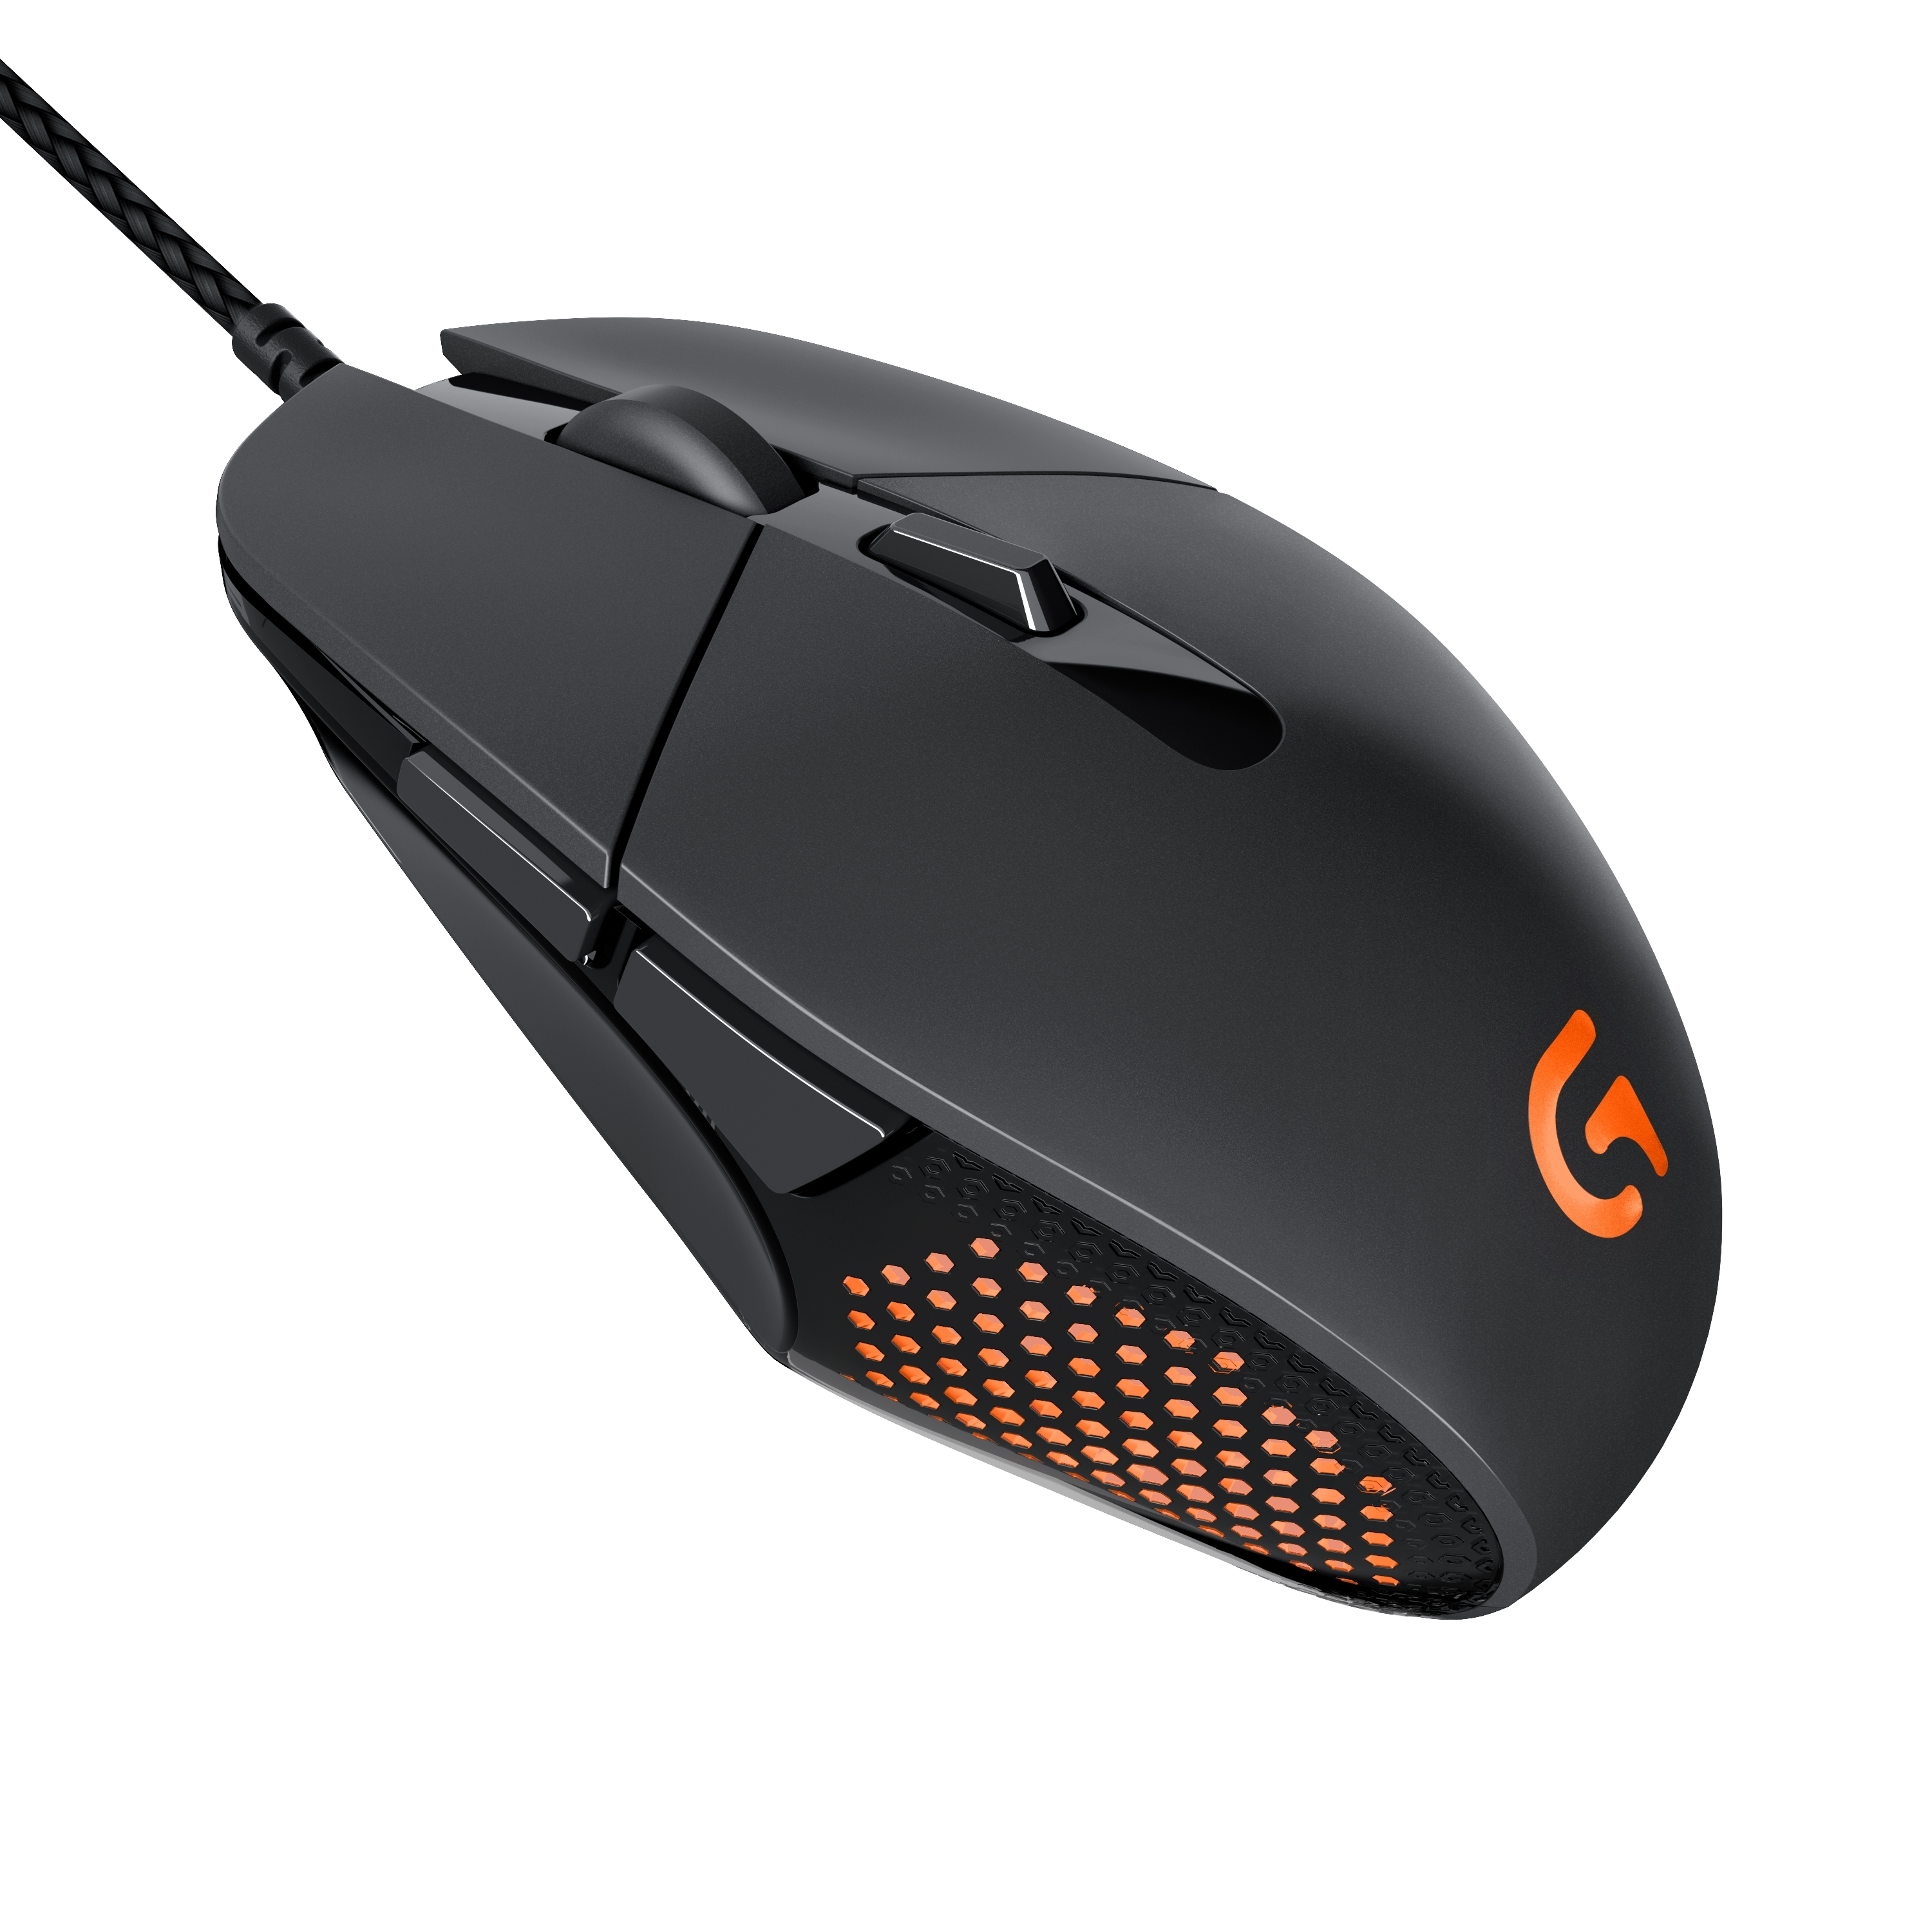 Mouse Guide 2 0: A list of mice with superior sensors and more